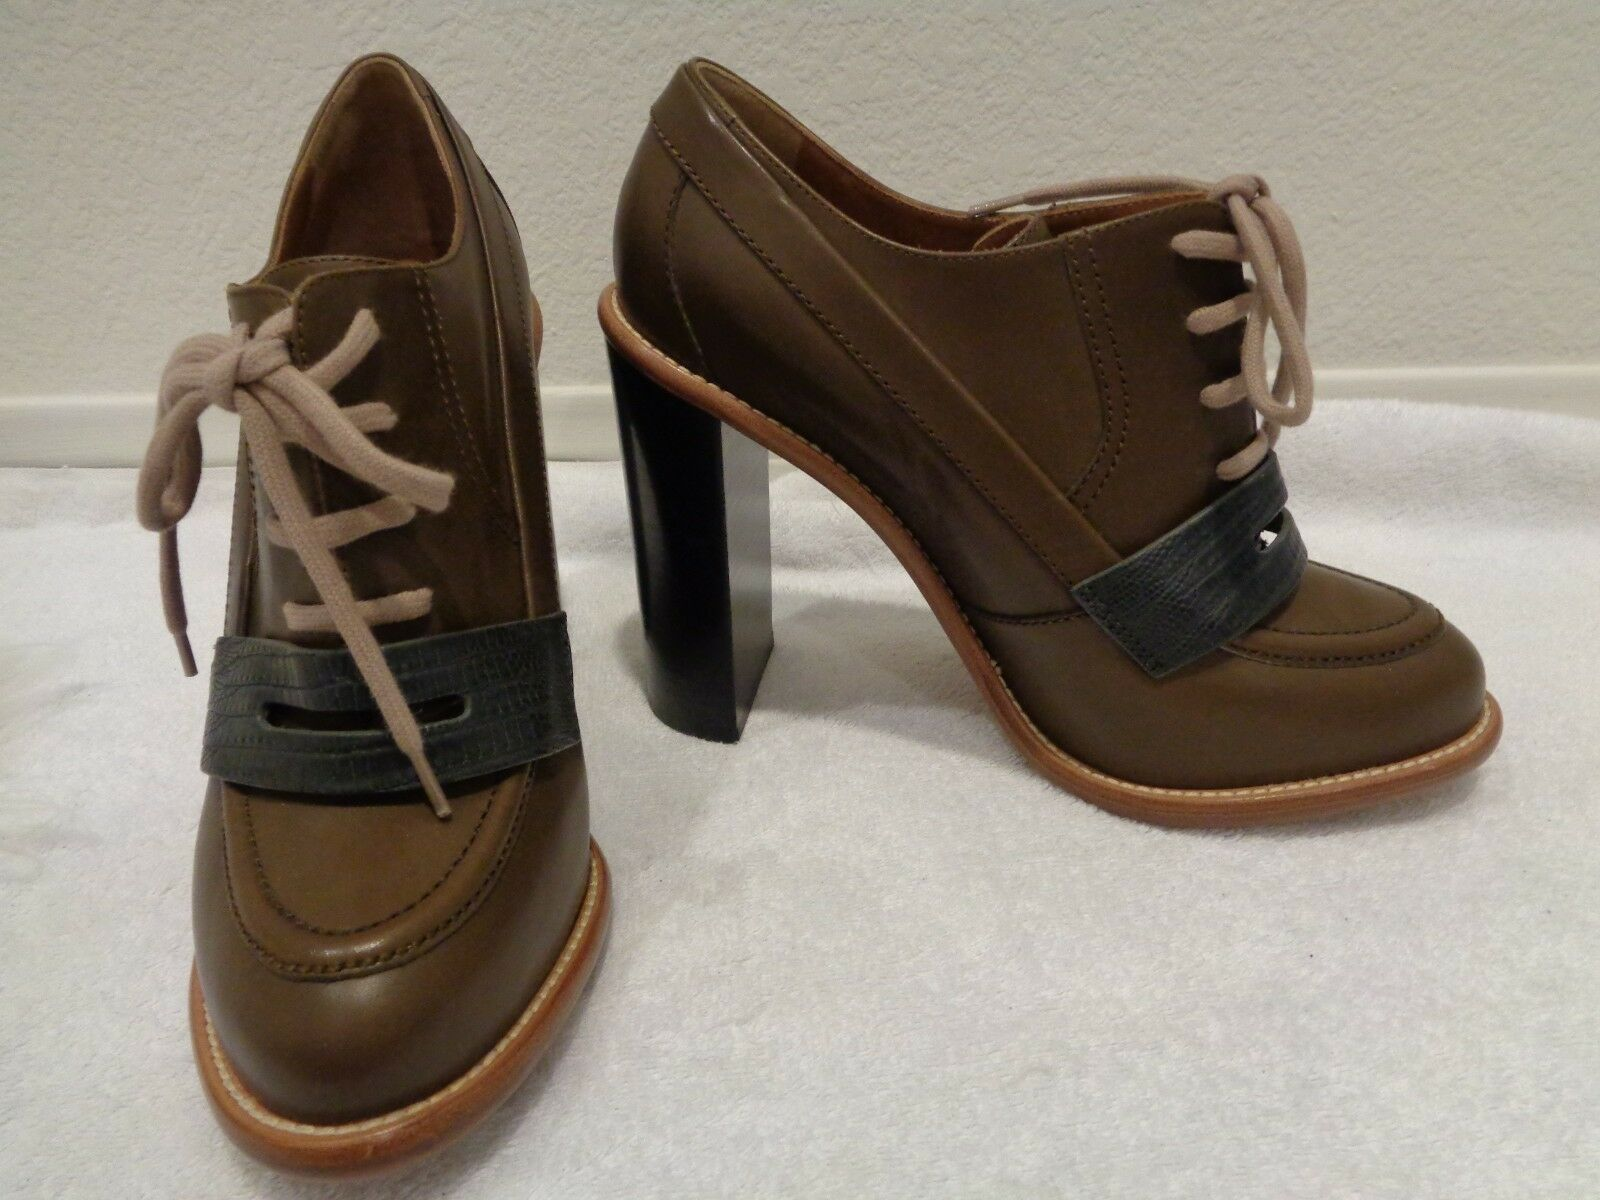 Chloe Tan Leather Lace Up Oxford Ankle Ankle Ankle Bootie Heels shoes EU40 US9.5  1195 ed9347